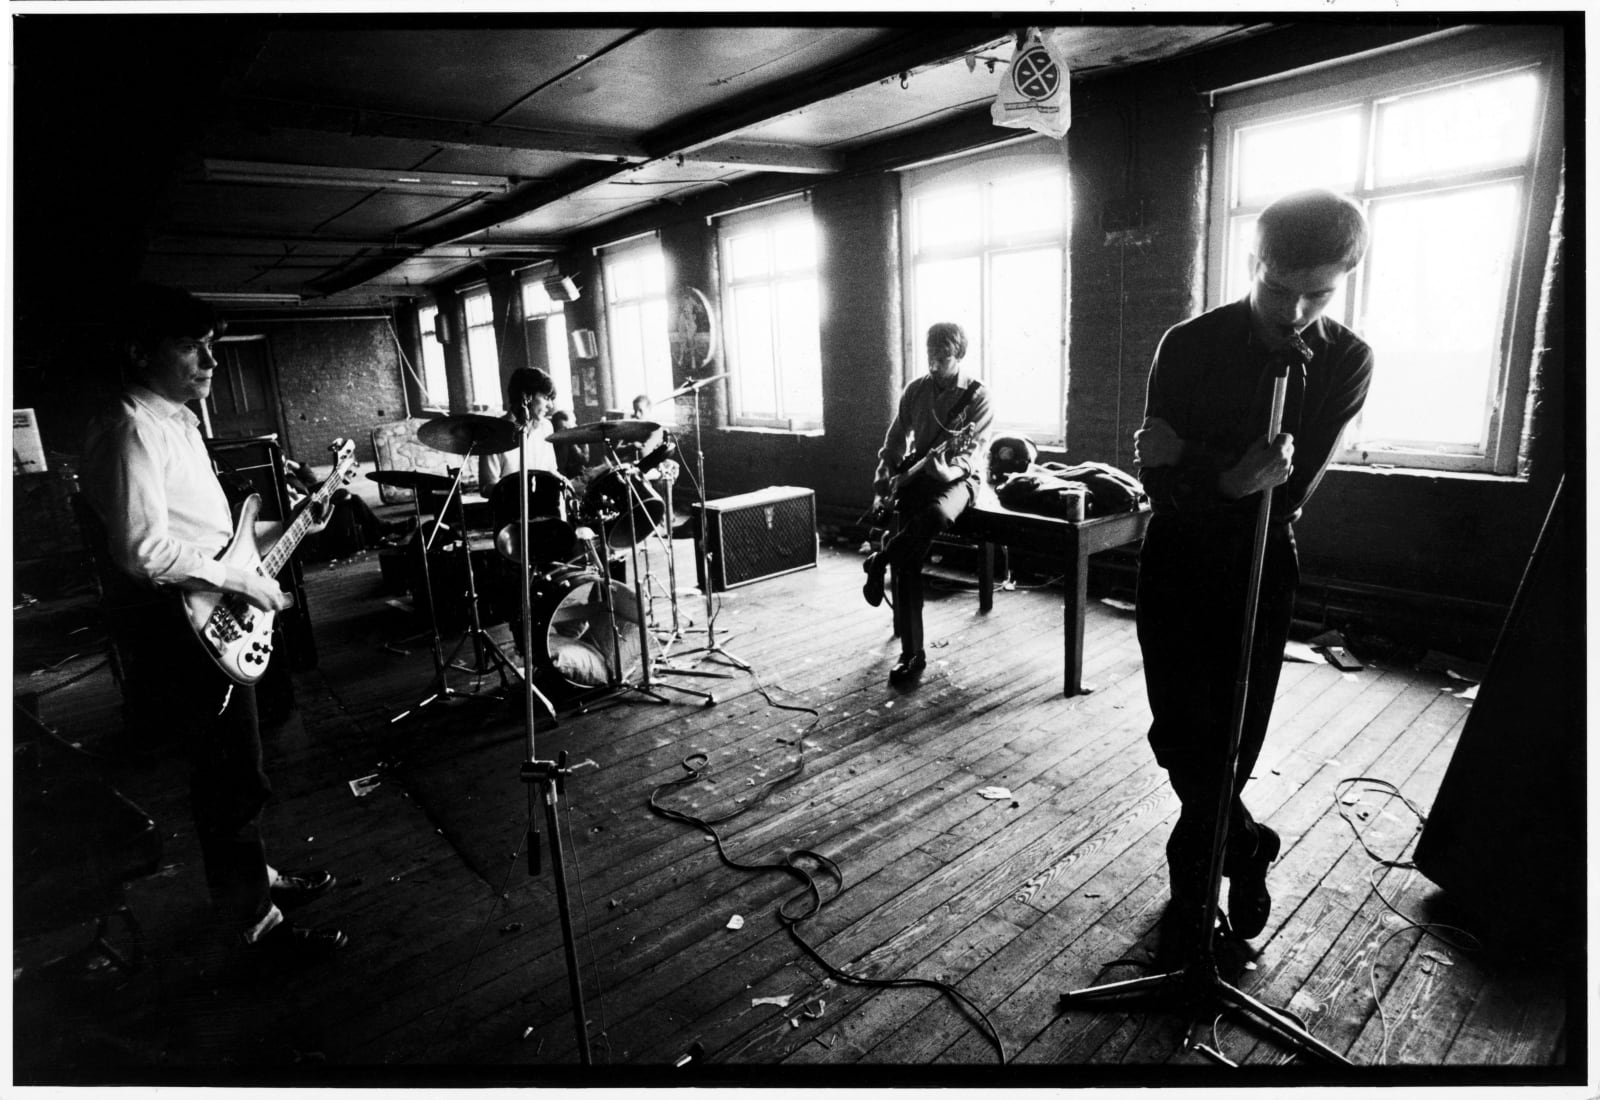 Kevin Cummins 1.Joy Division TJ Davidson's rehearsal room, Little Peter Street, Manchester 19 August 1979, 2006 Gelatin silver print 40.6 x 50.8 cm 16 x 20 in